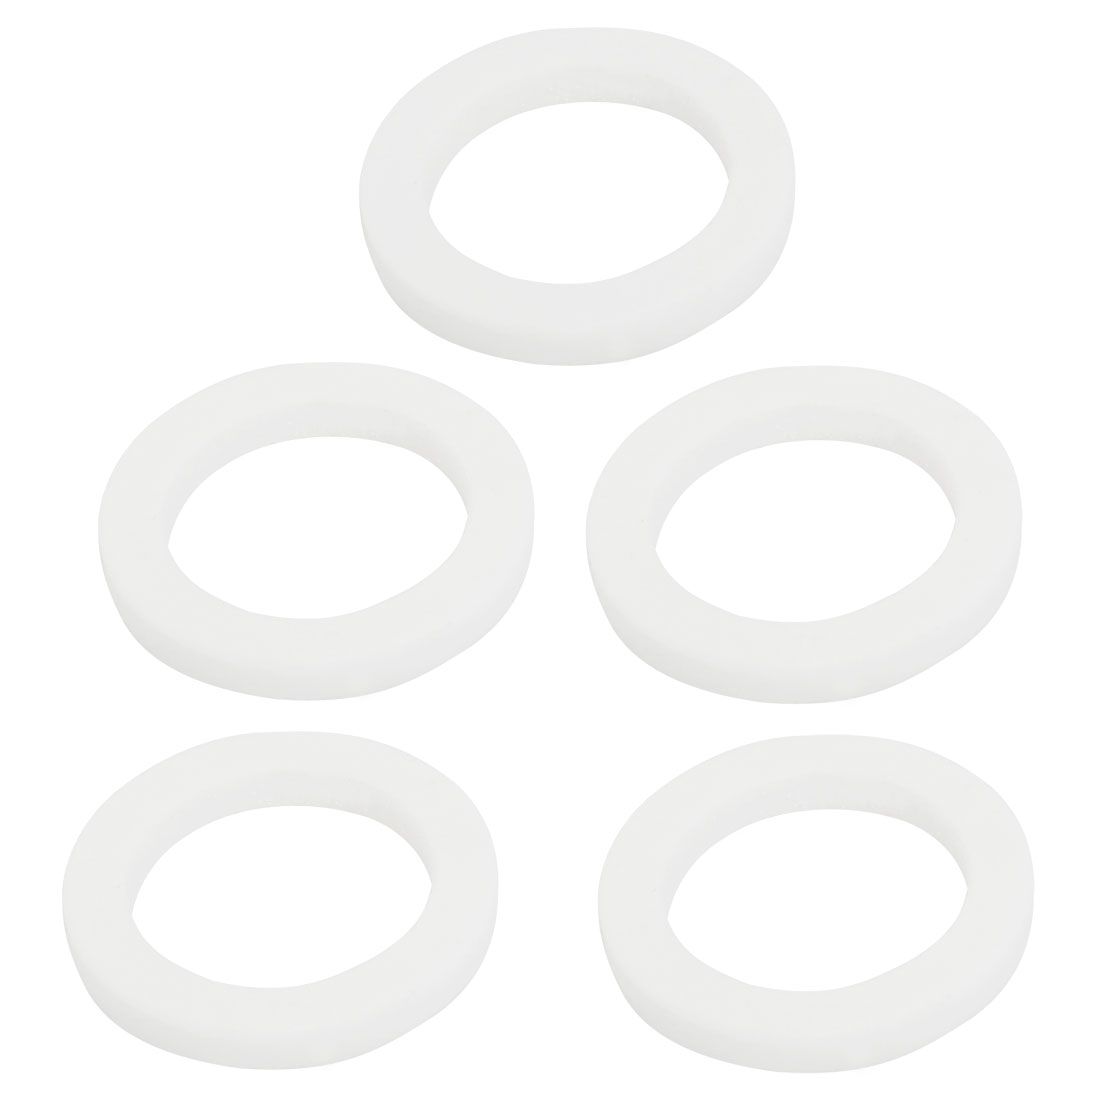 26.3mm OD 3mm High White Ceramic Insulation Protection Washer 5 Pcs